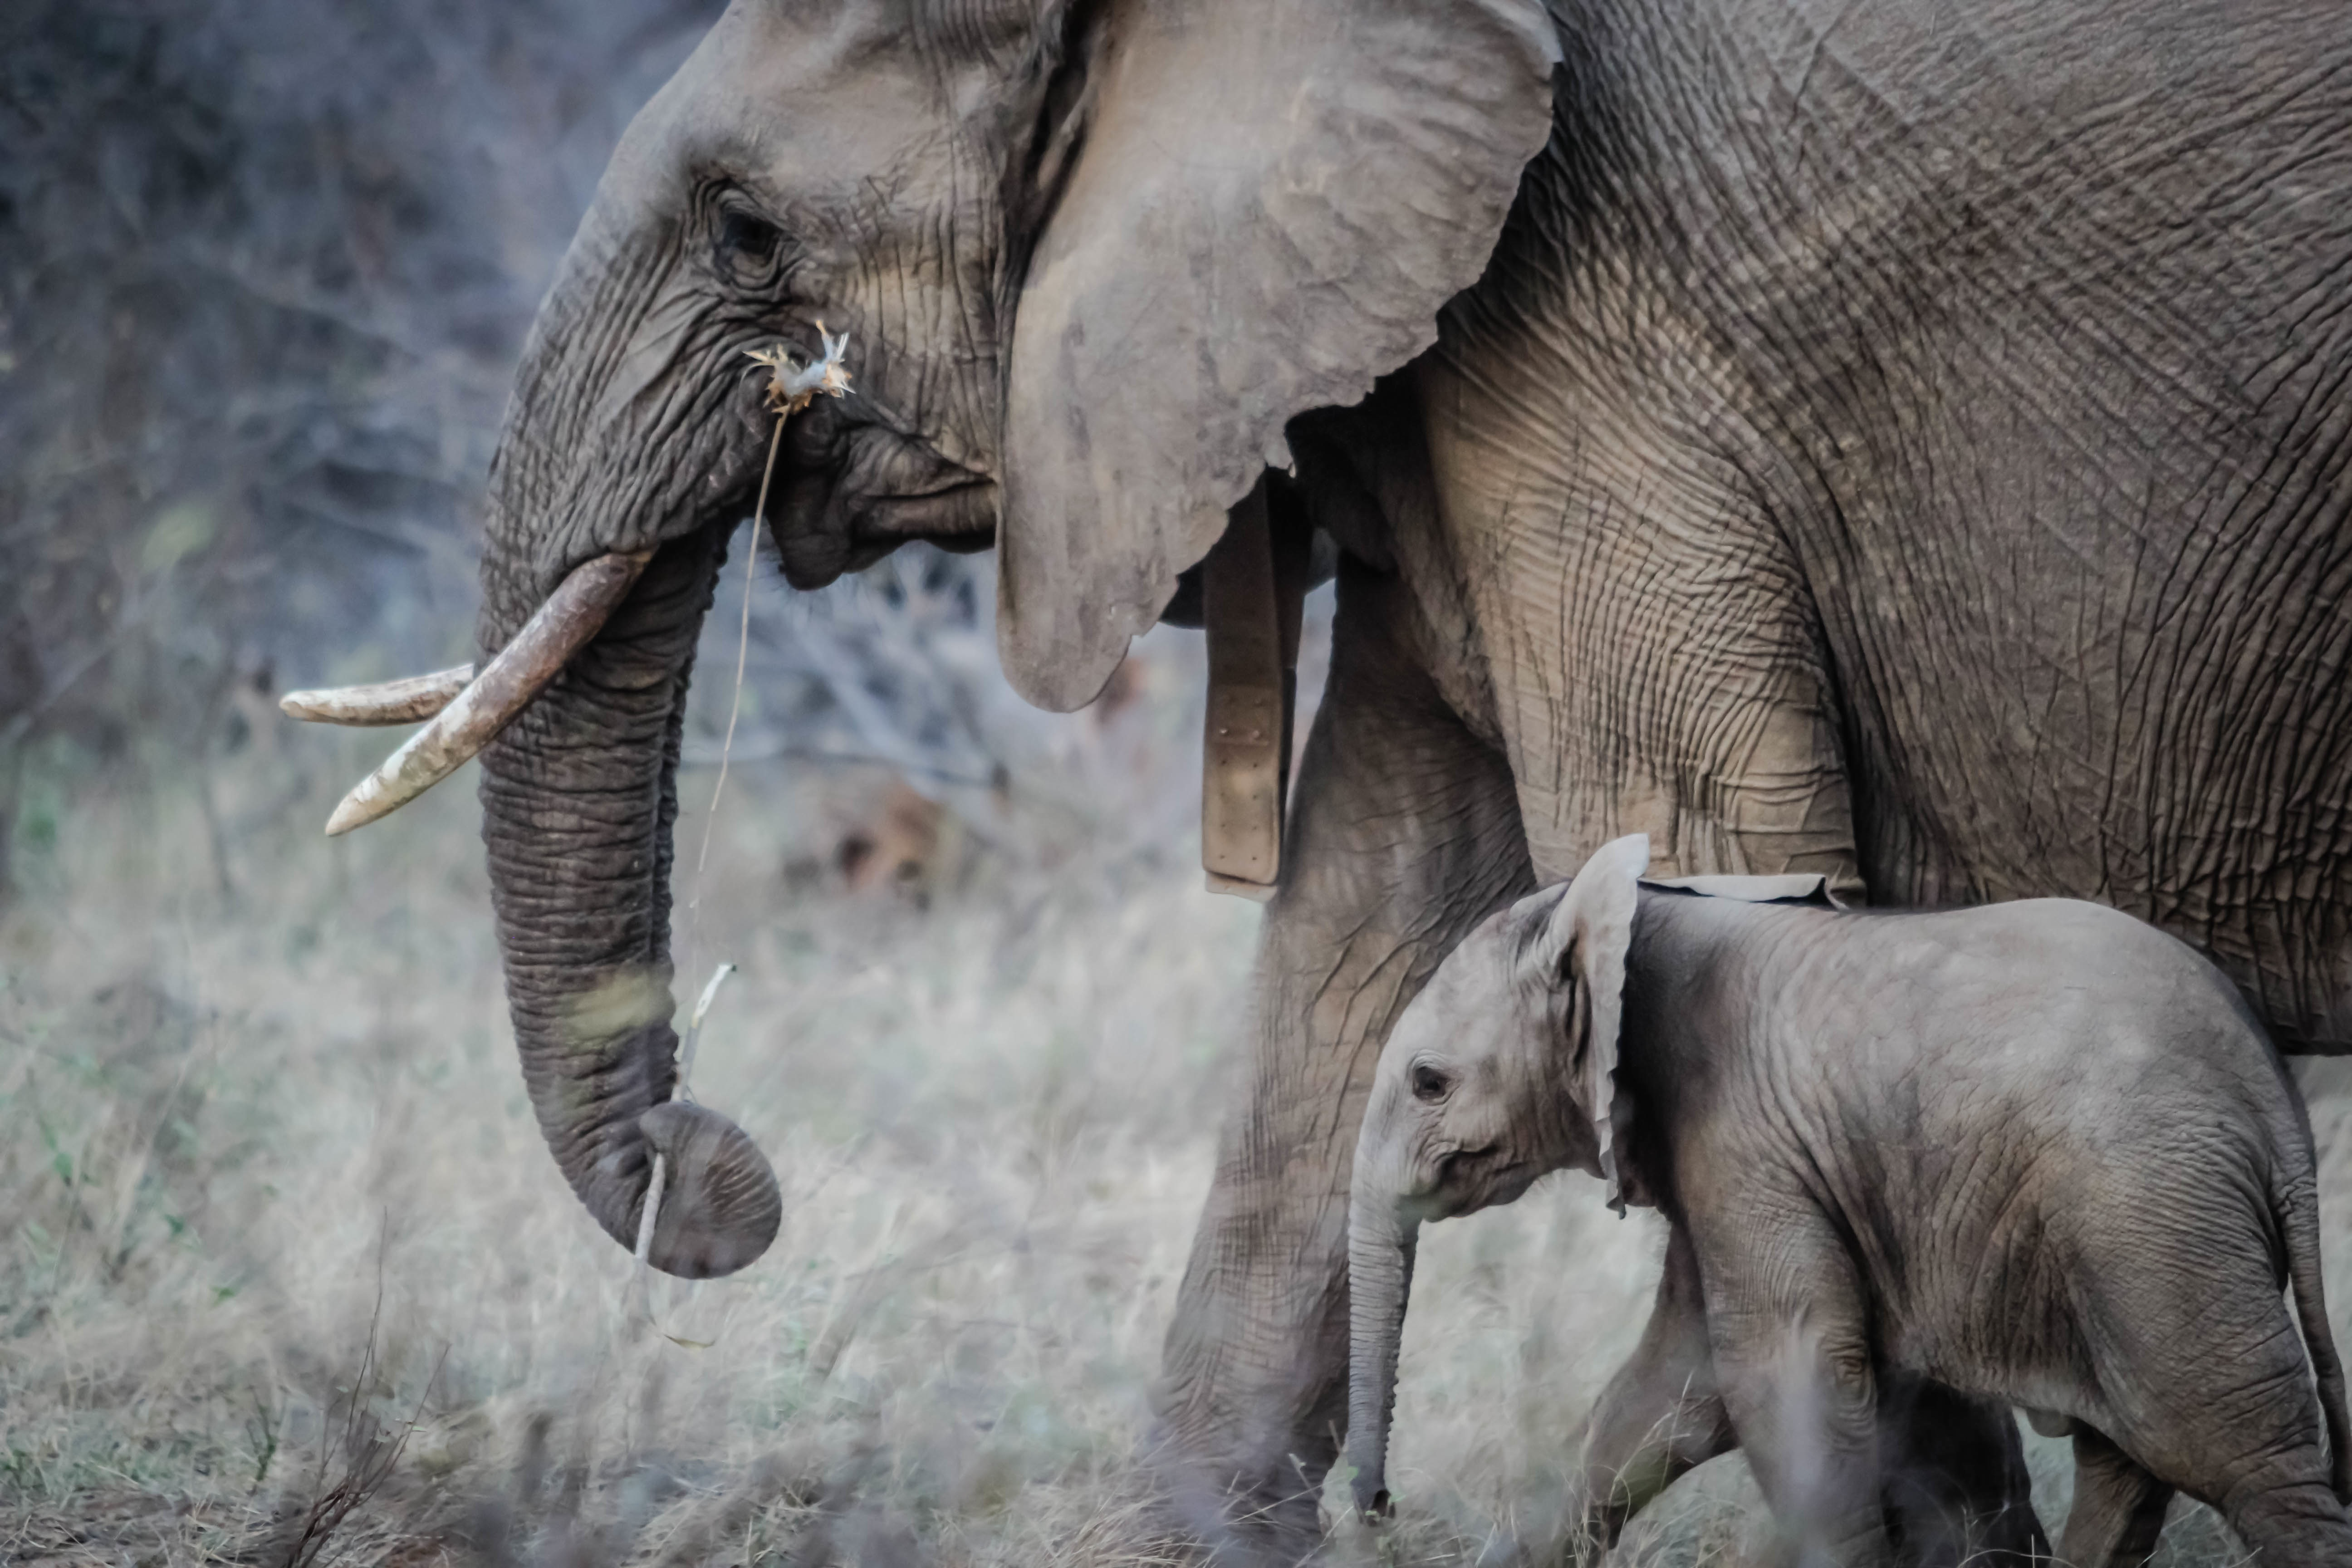 116302 download wallpaper Animals, Stroll, Young, Joey, Trunk, Tusks, Elephants screensavers and pictures for free